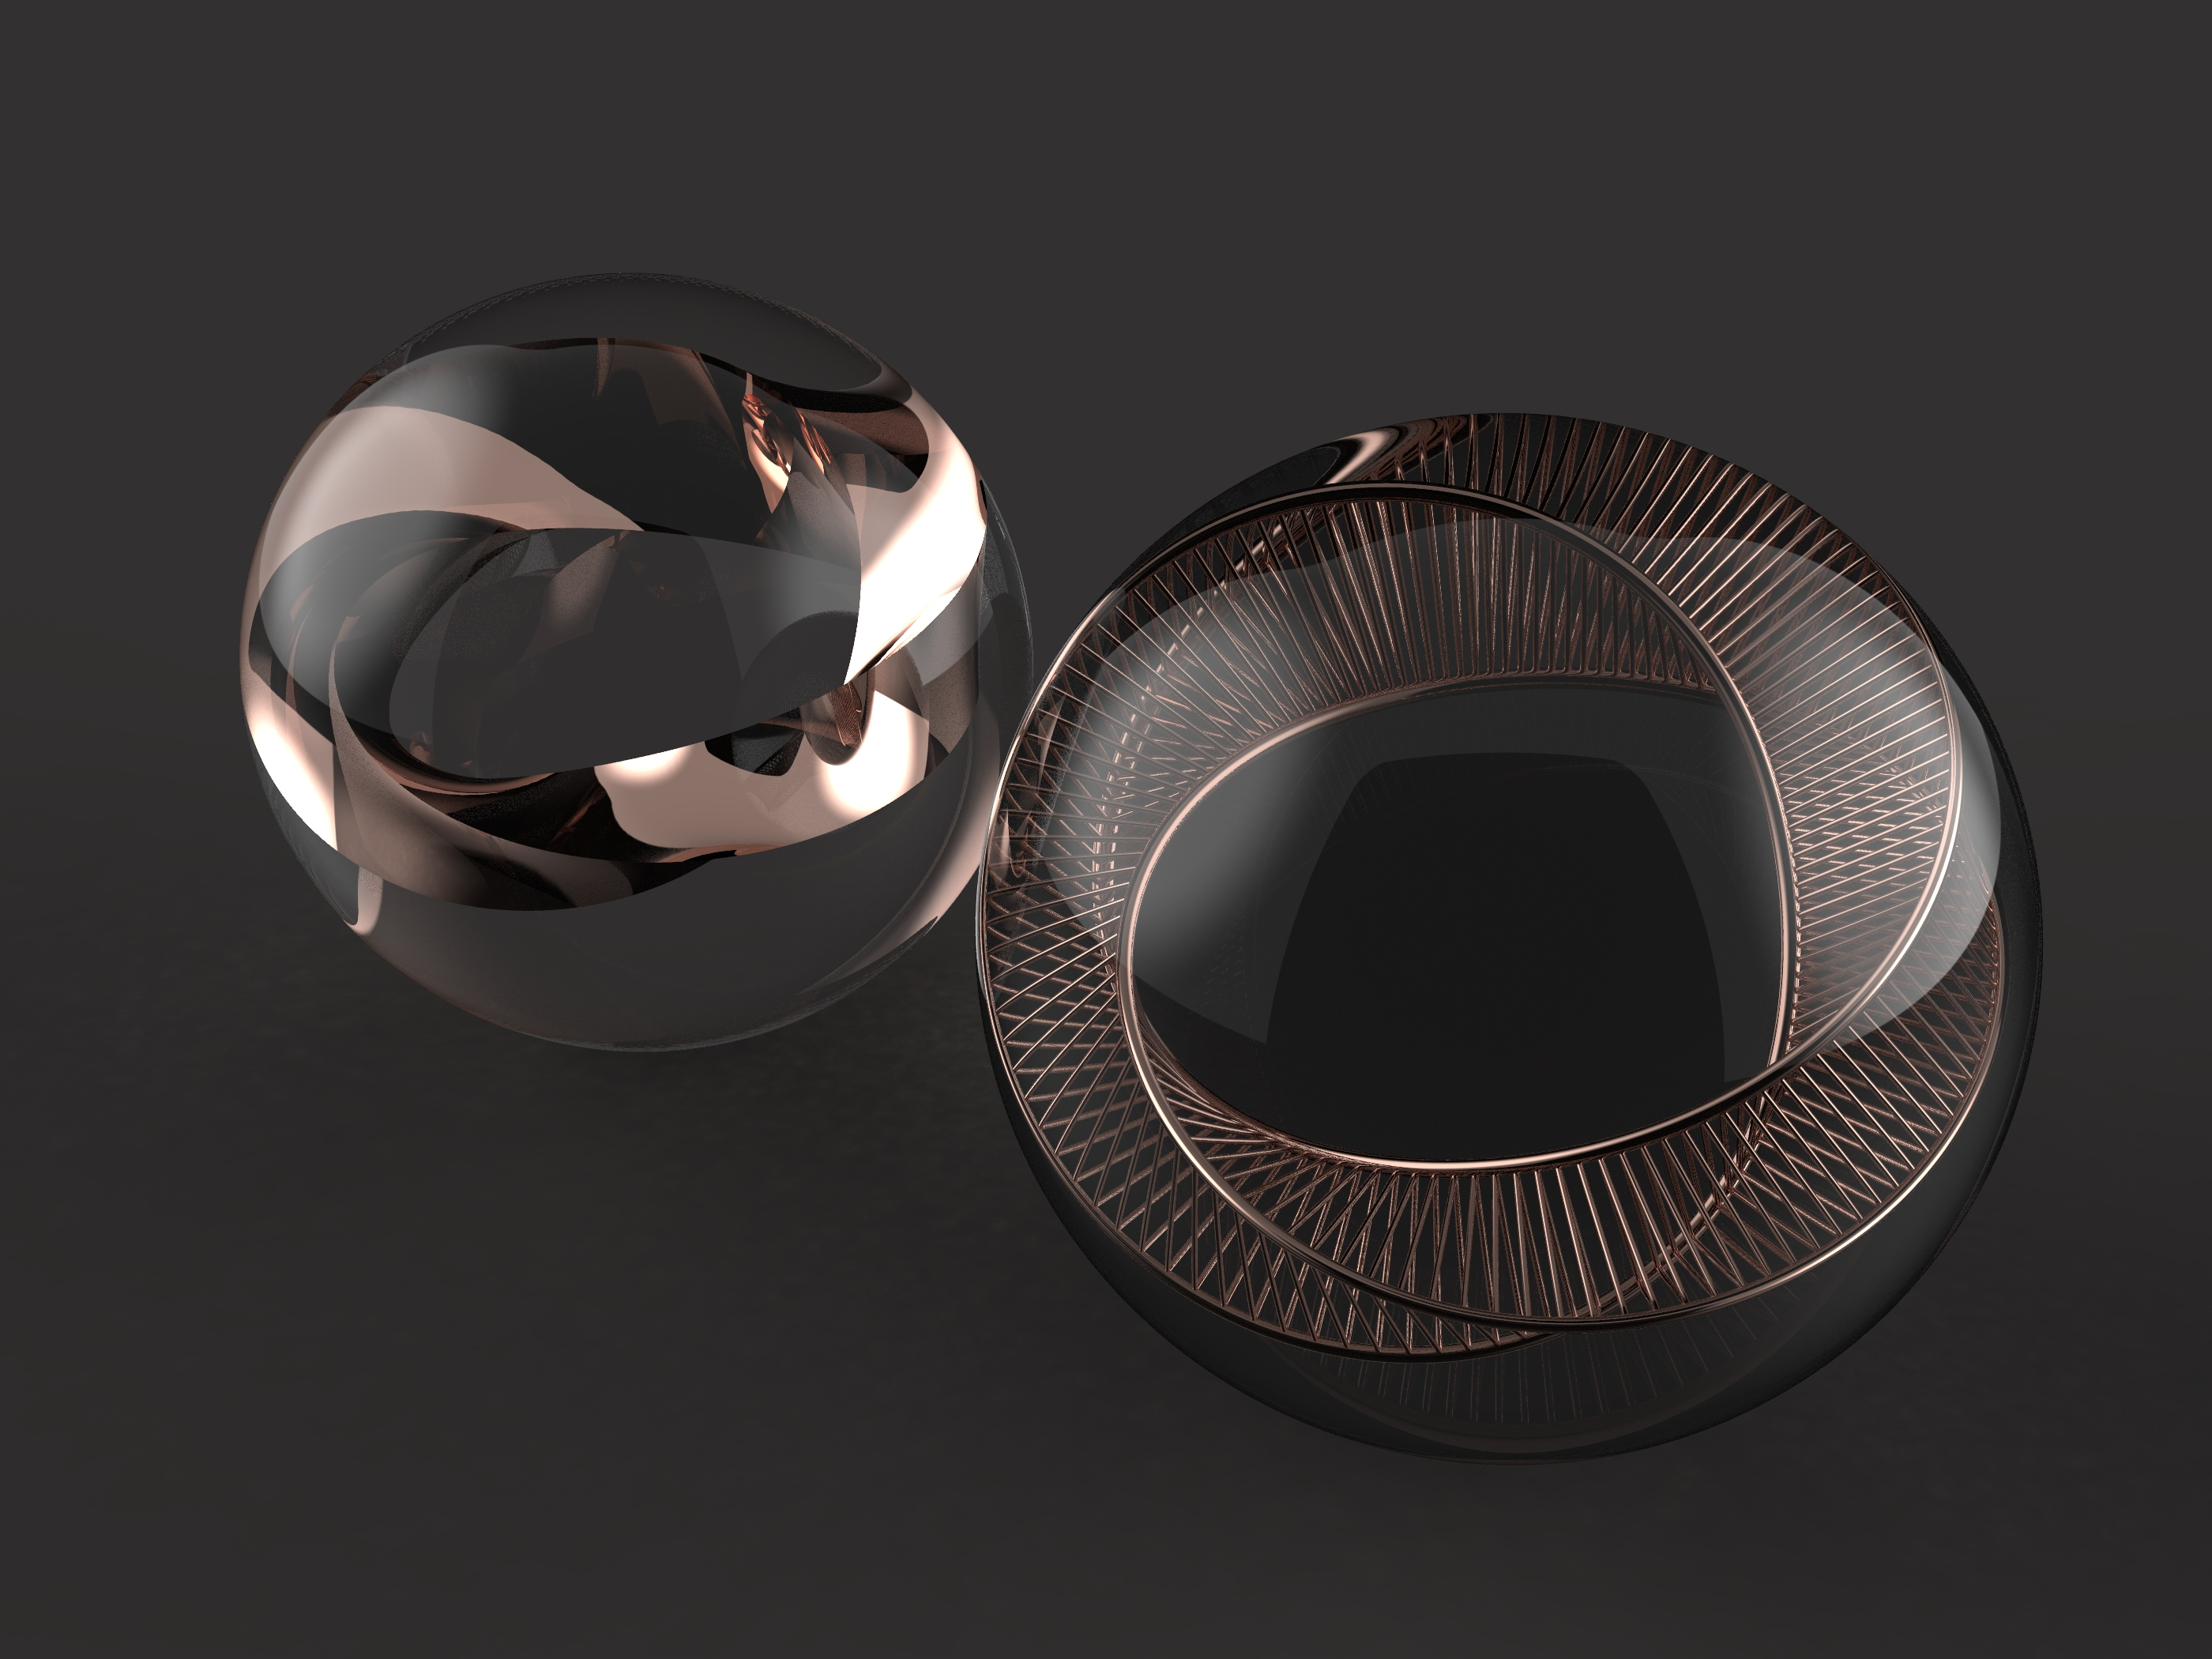 Acciaio Dolce Topology Jewelry Series